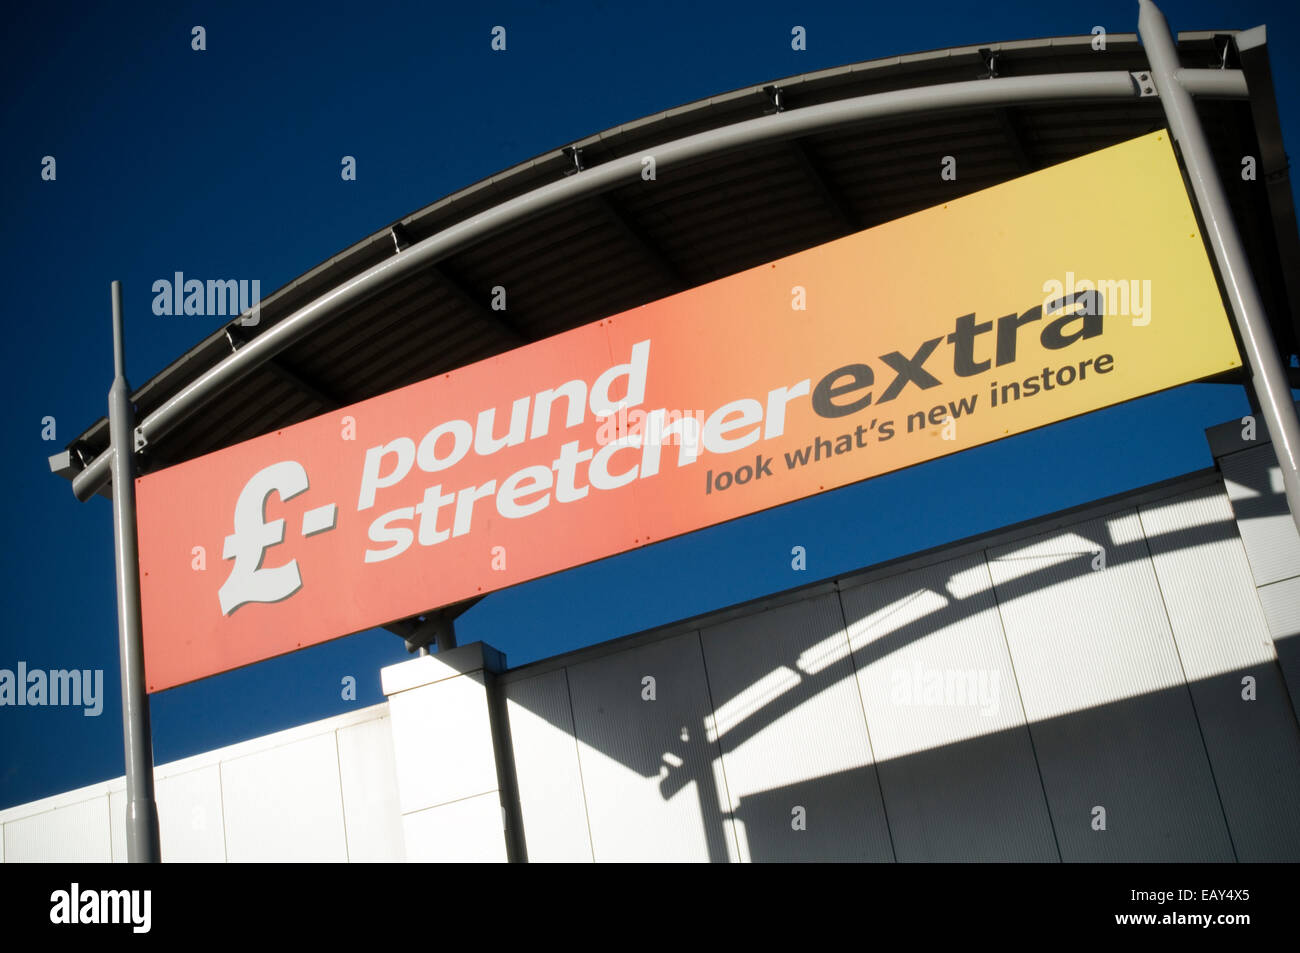 pound stretcher extra pound shop shops budget retail retailers retailing discount discounted - Stock Image